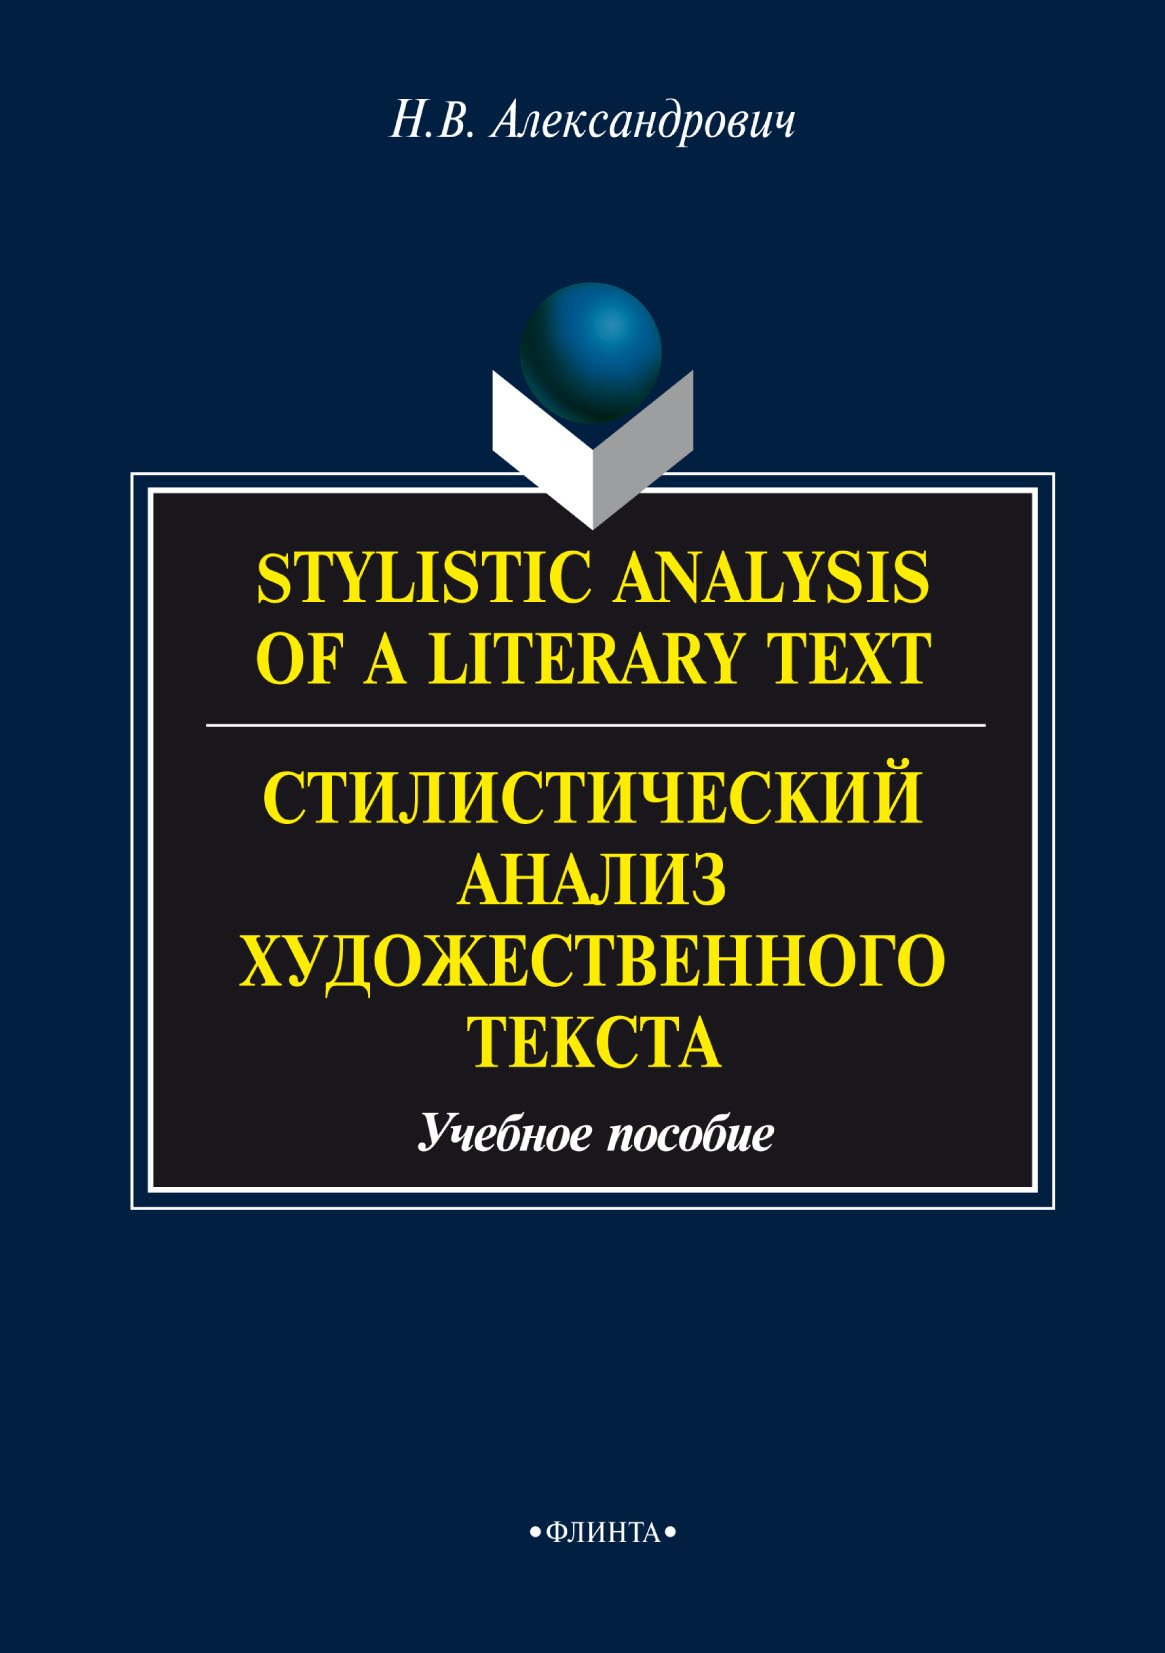 Н. В. Александрович Stylistic analysis of a literary text. Theory and practice / Стилистический анализ художественного текста. Теория и практика. Учебное пособие н с болотнова филологический анализ текста